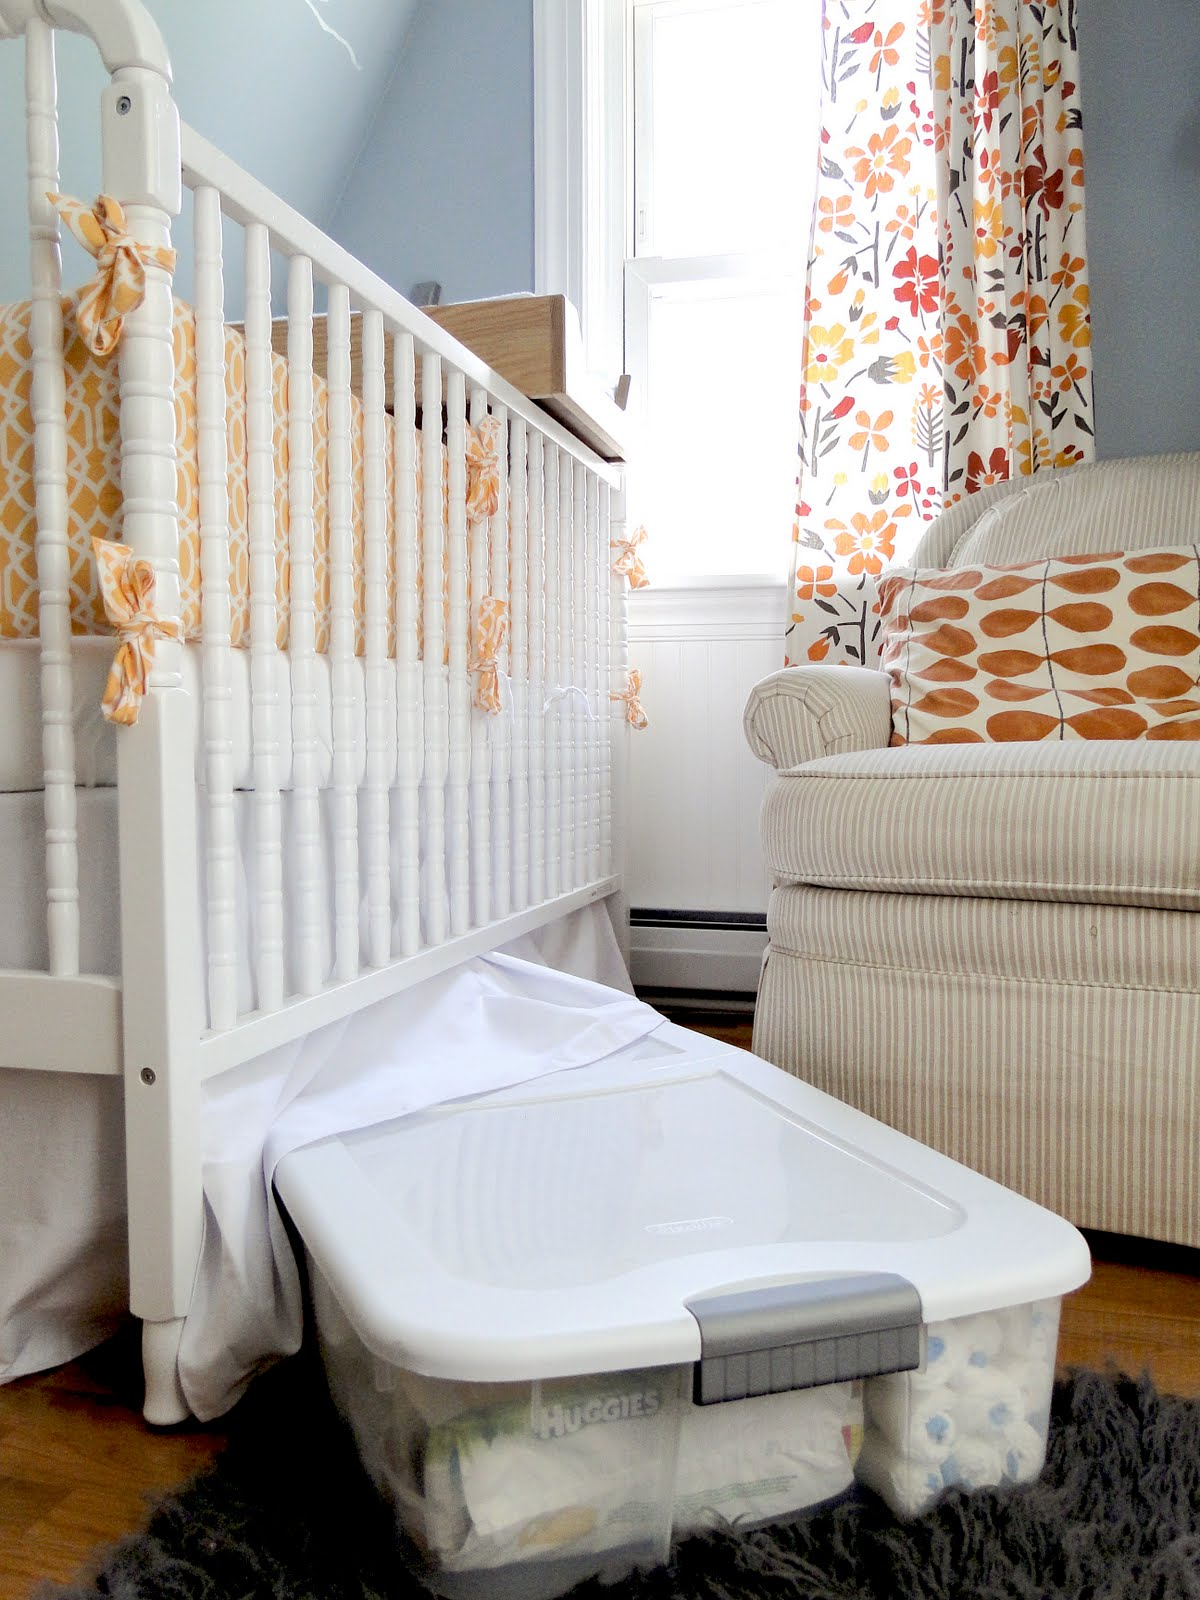 A Lovely Lark: Nursery Organization